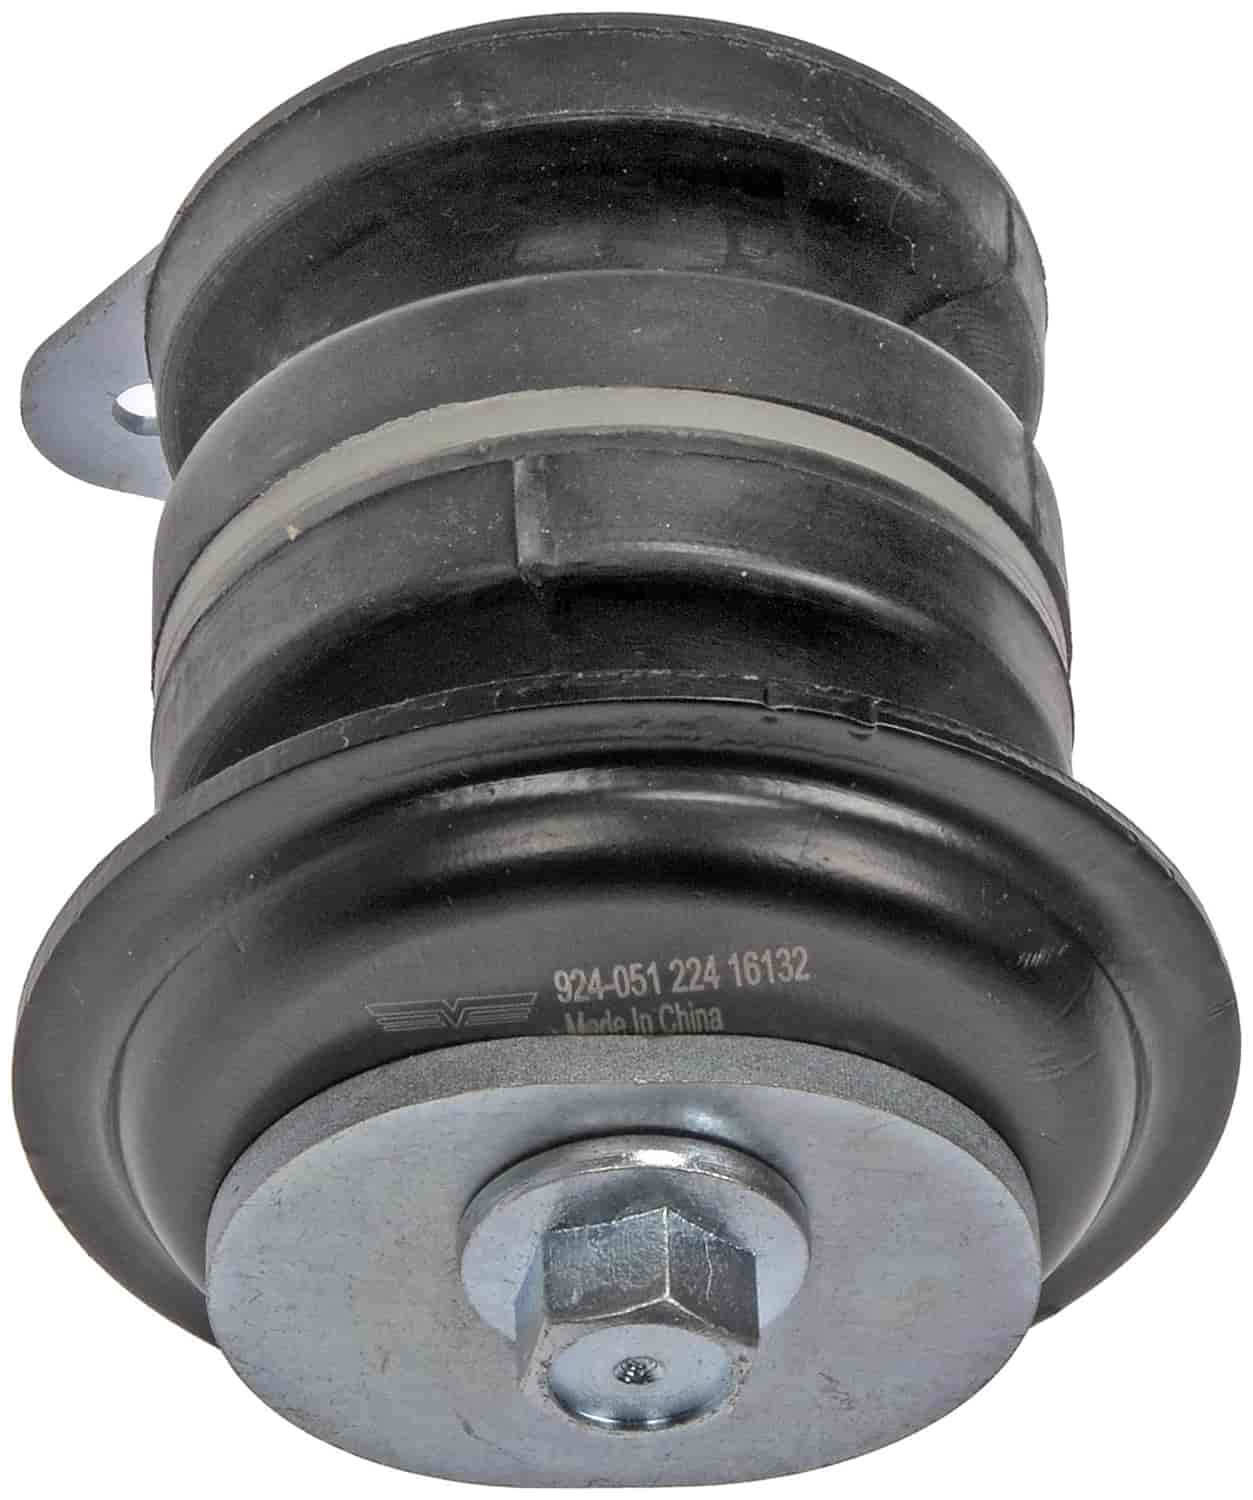 Dorman Products 924-051